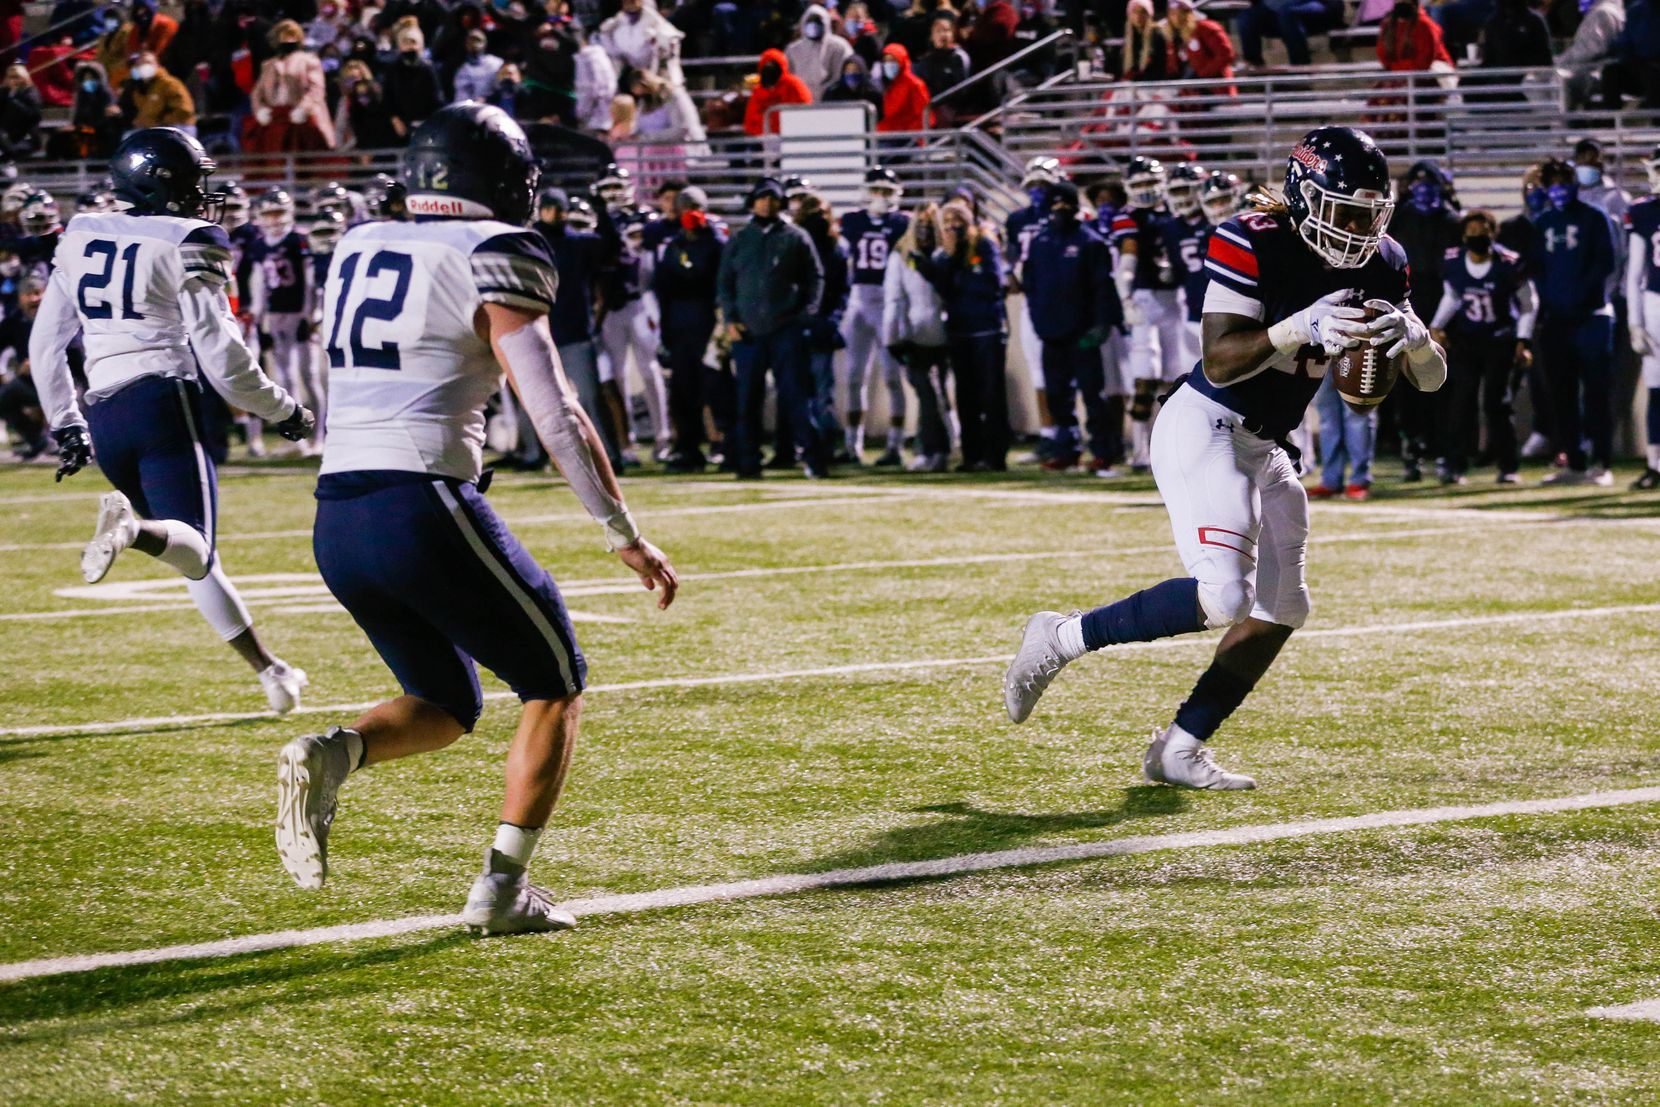 Denton Ryan's running back Keori Hicks runs in for a touchdown after catching a pass during the fourth quarter against Frisco Lone Star at the C.H. Collins Complex in Denton on Thursday, Dec. 4, 2020. Denton Ryan won, 35-21. (Juan Figueroa/ The Dallas Morning News)